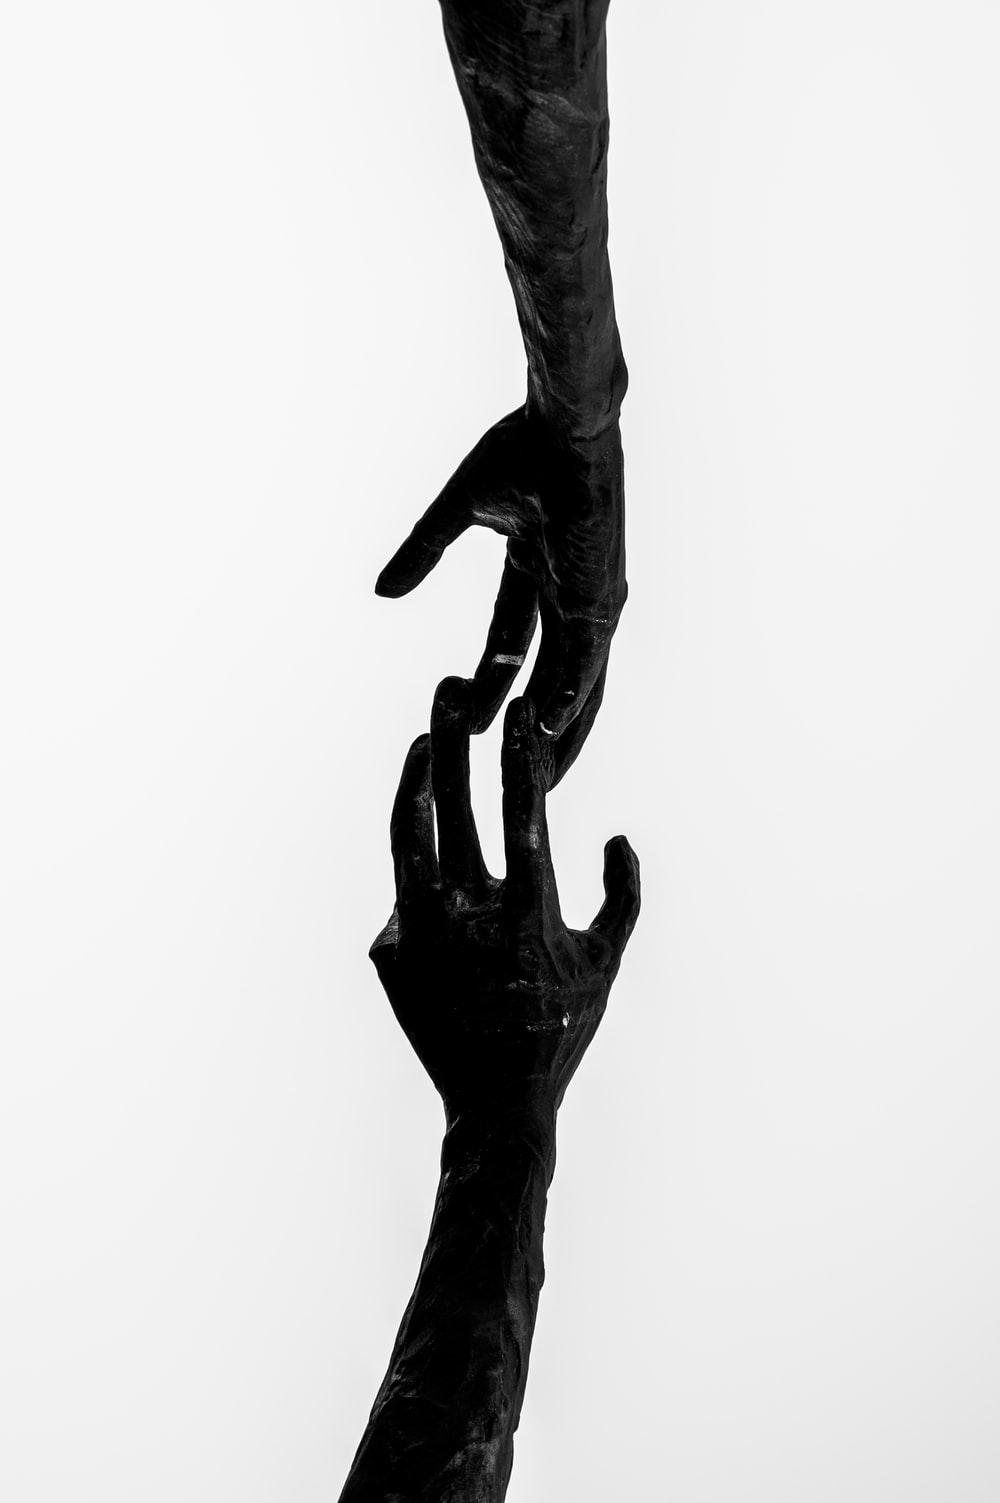 black and white human statue